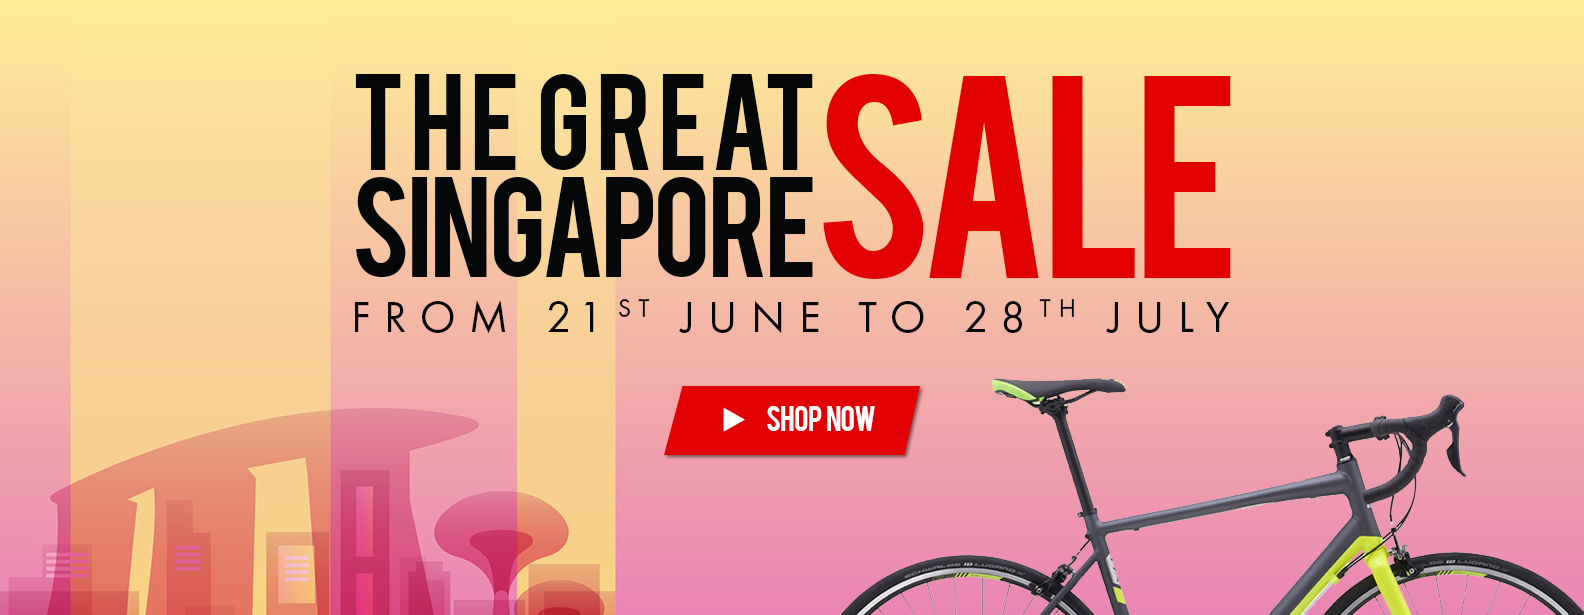 THE GREAT SINGAPORE SALE 2019